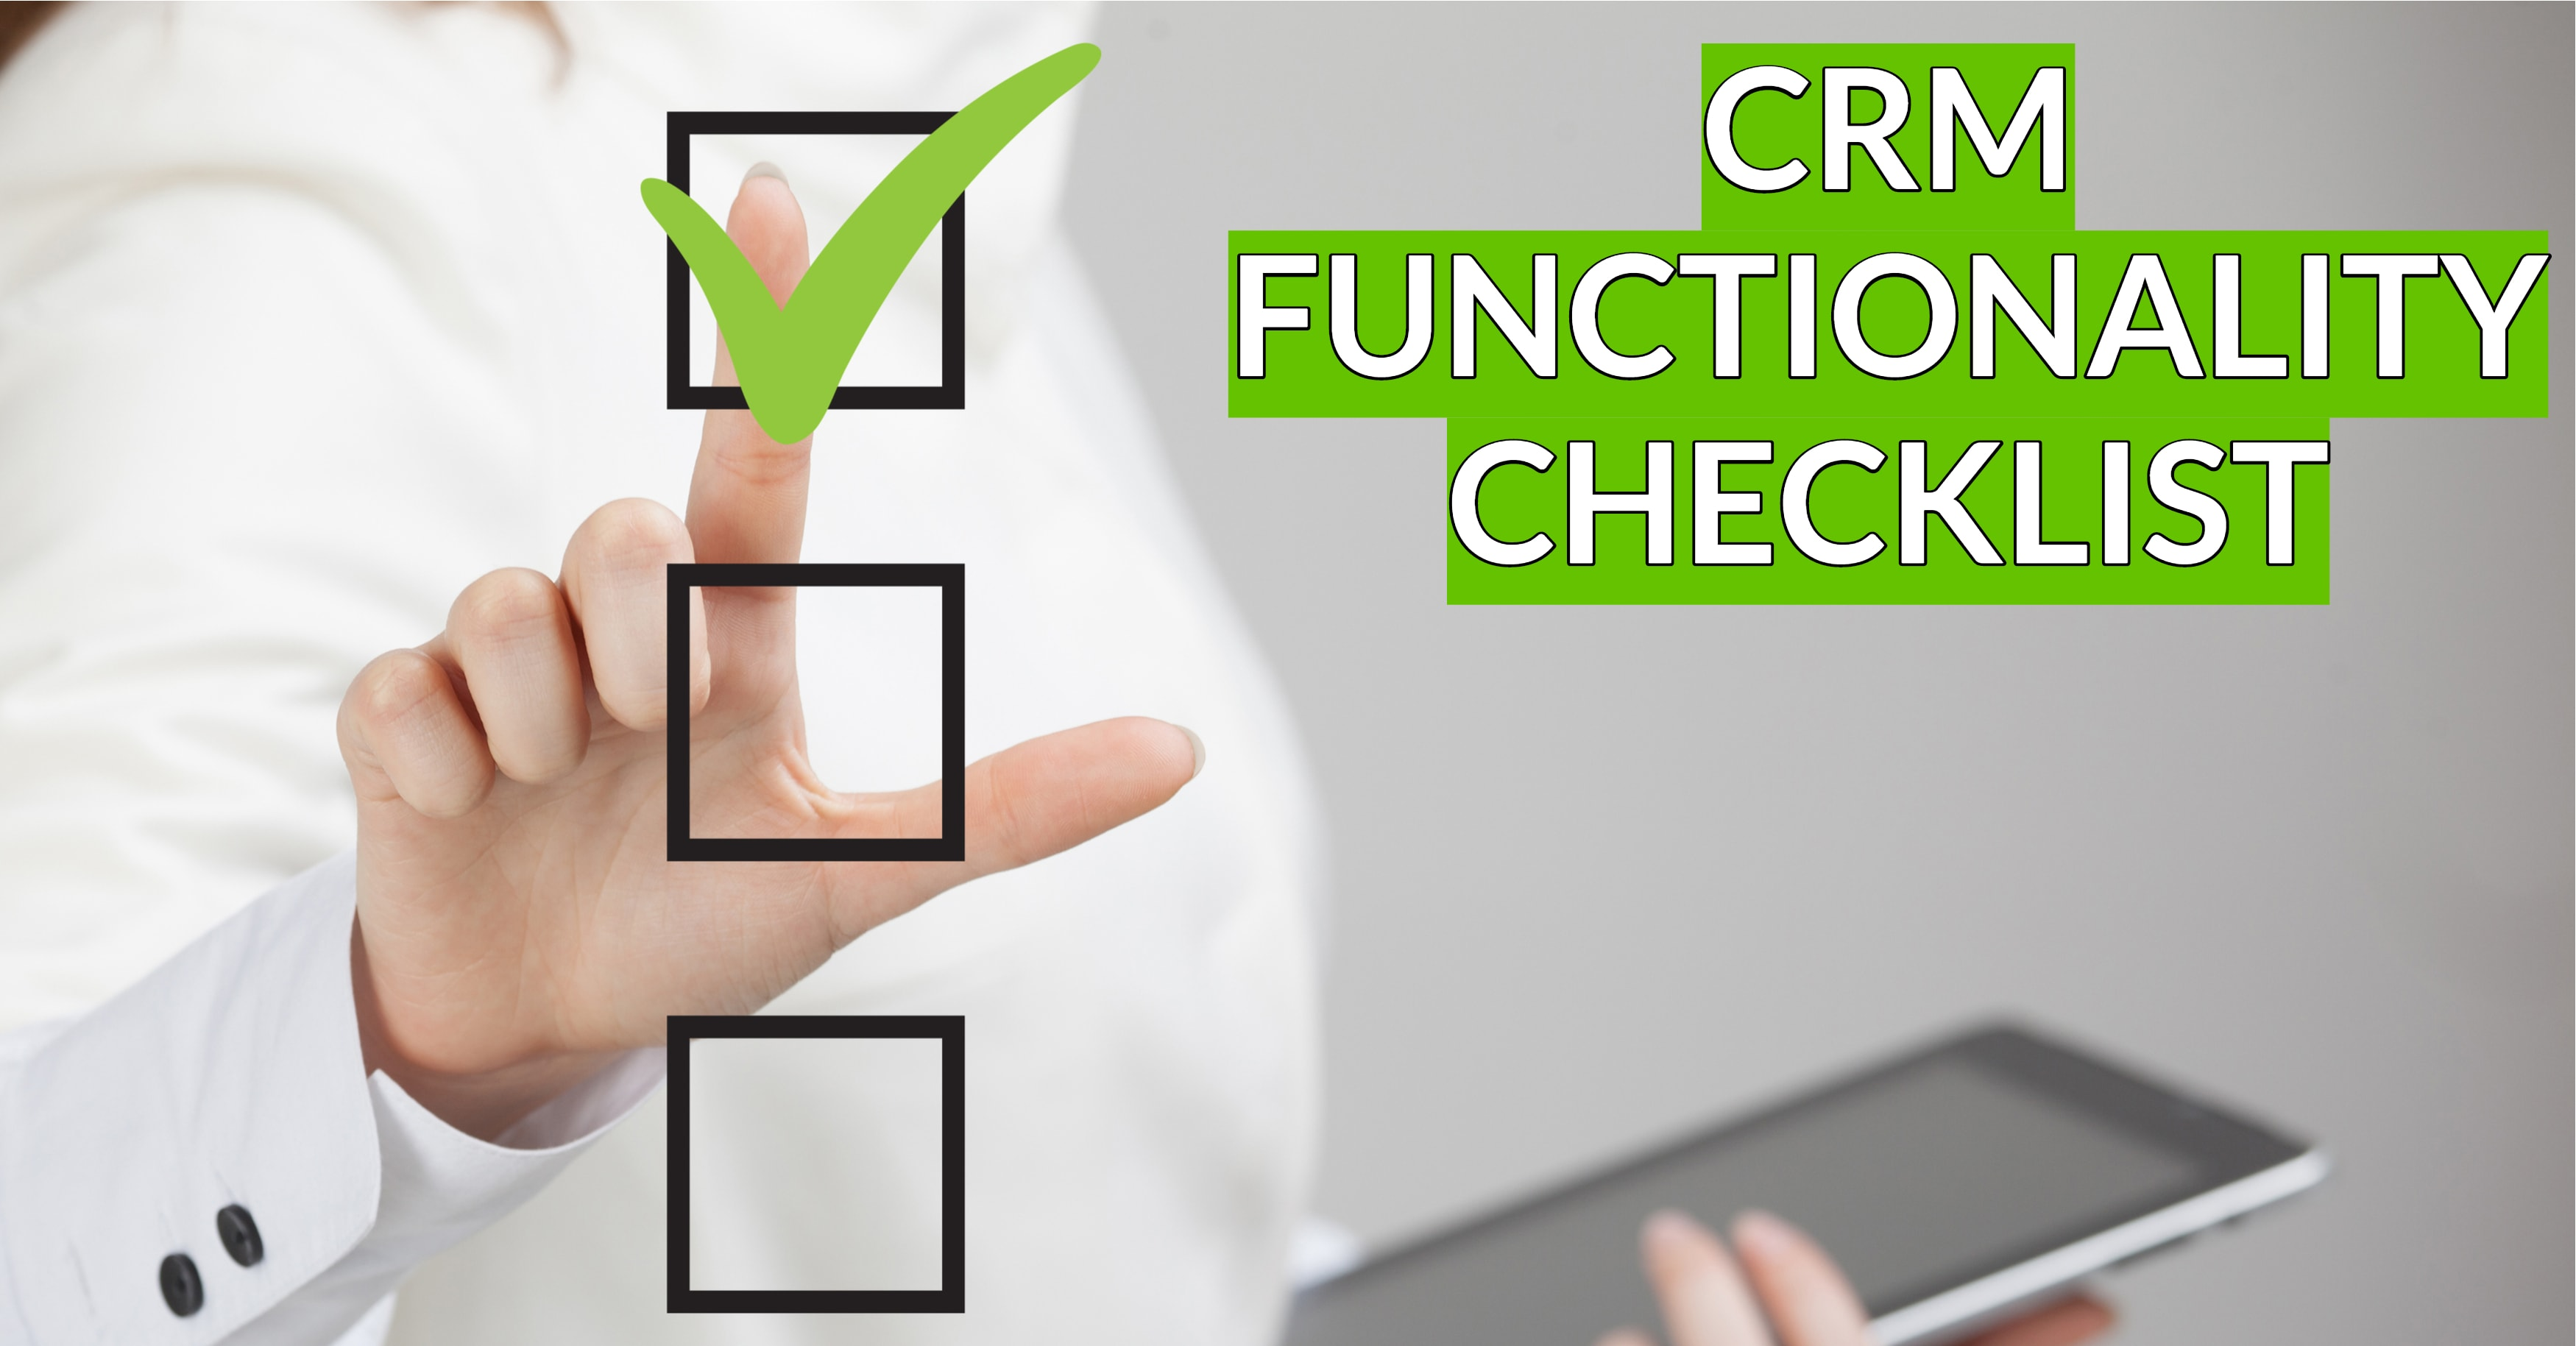 CRM Functionality Checklist